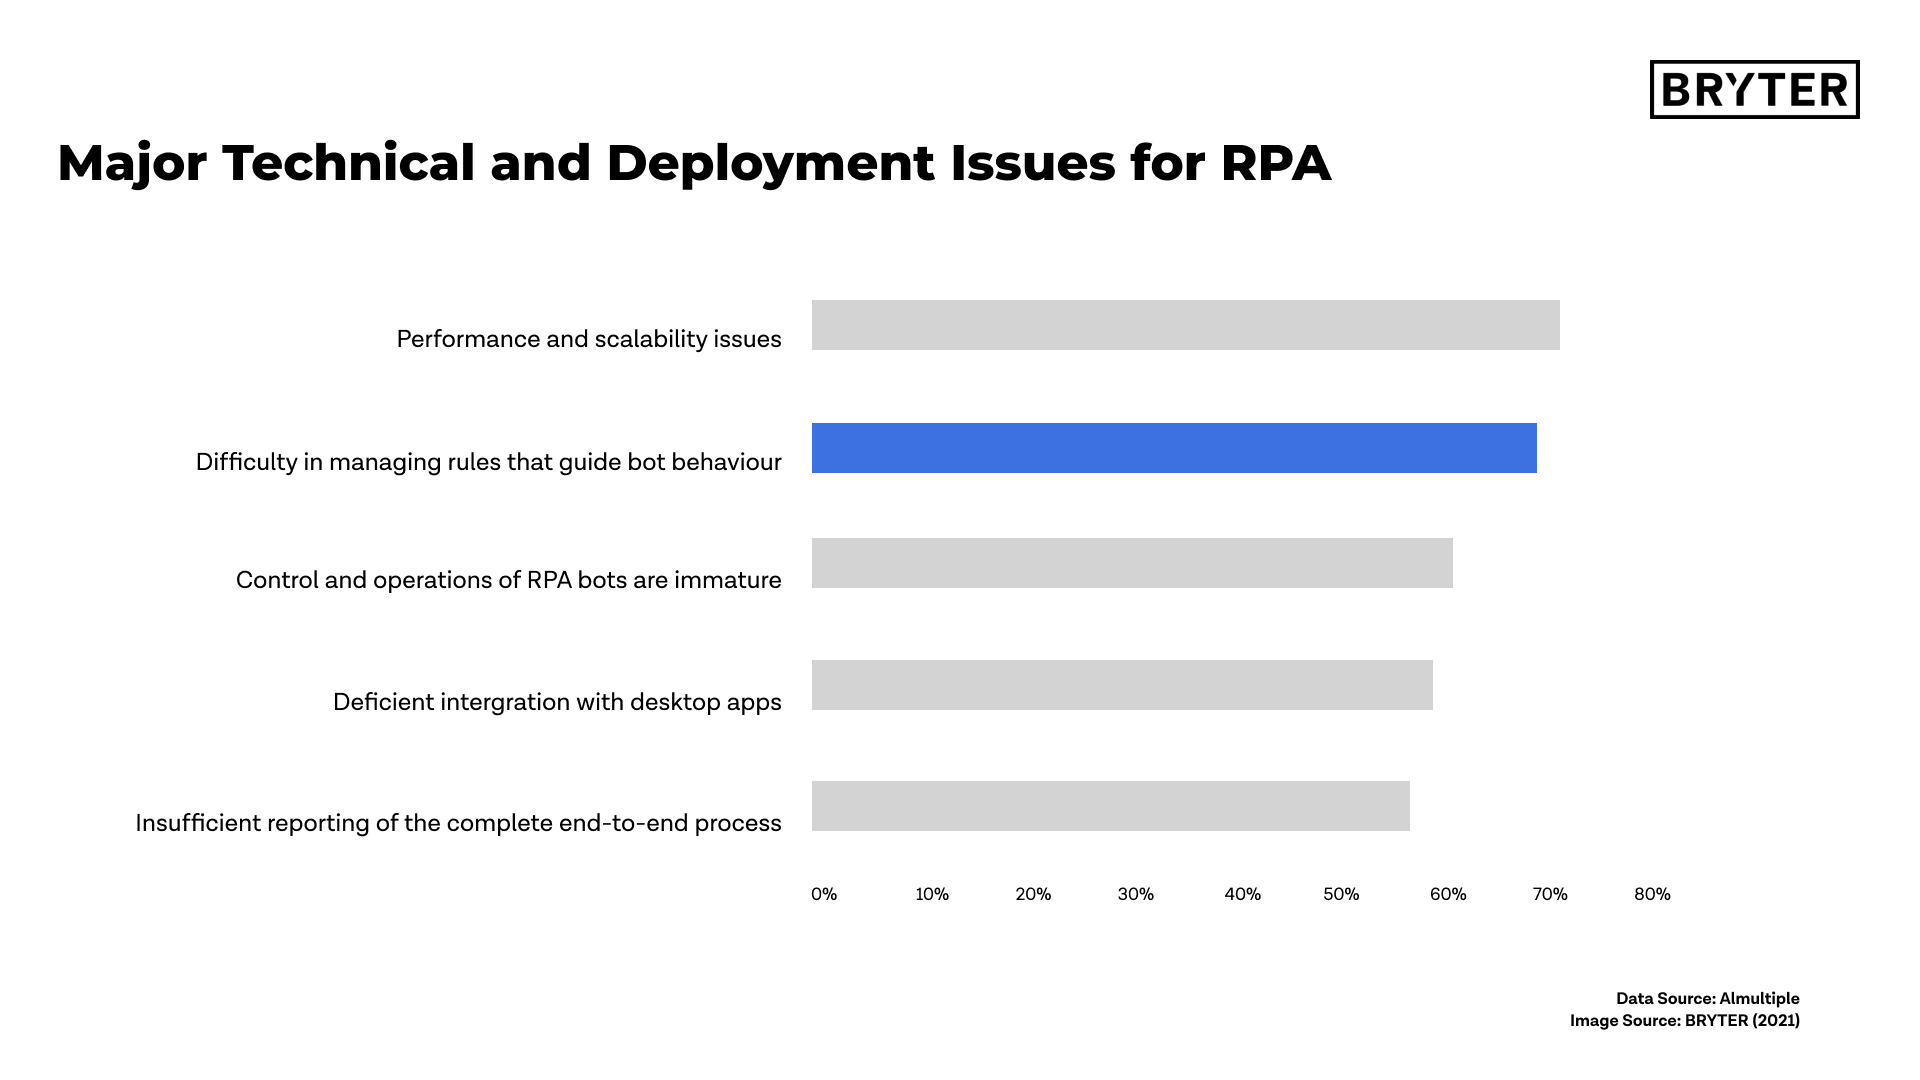 Major Technical and Deployment Issues for RPA